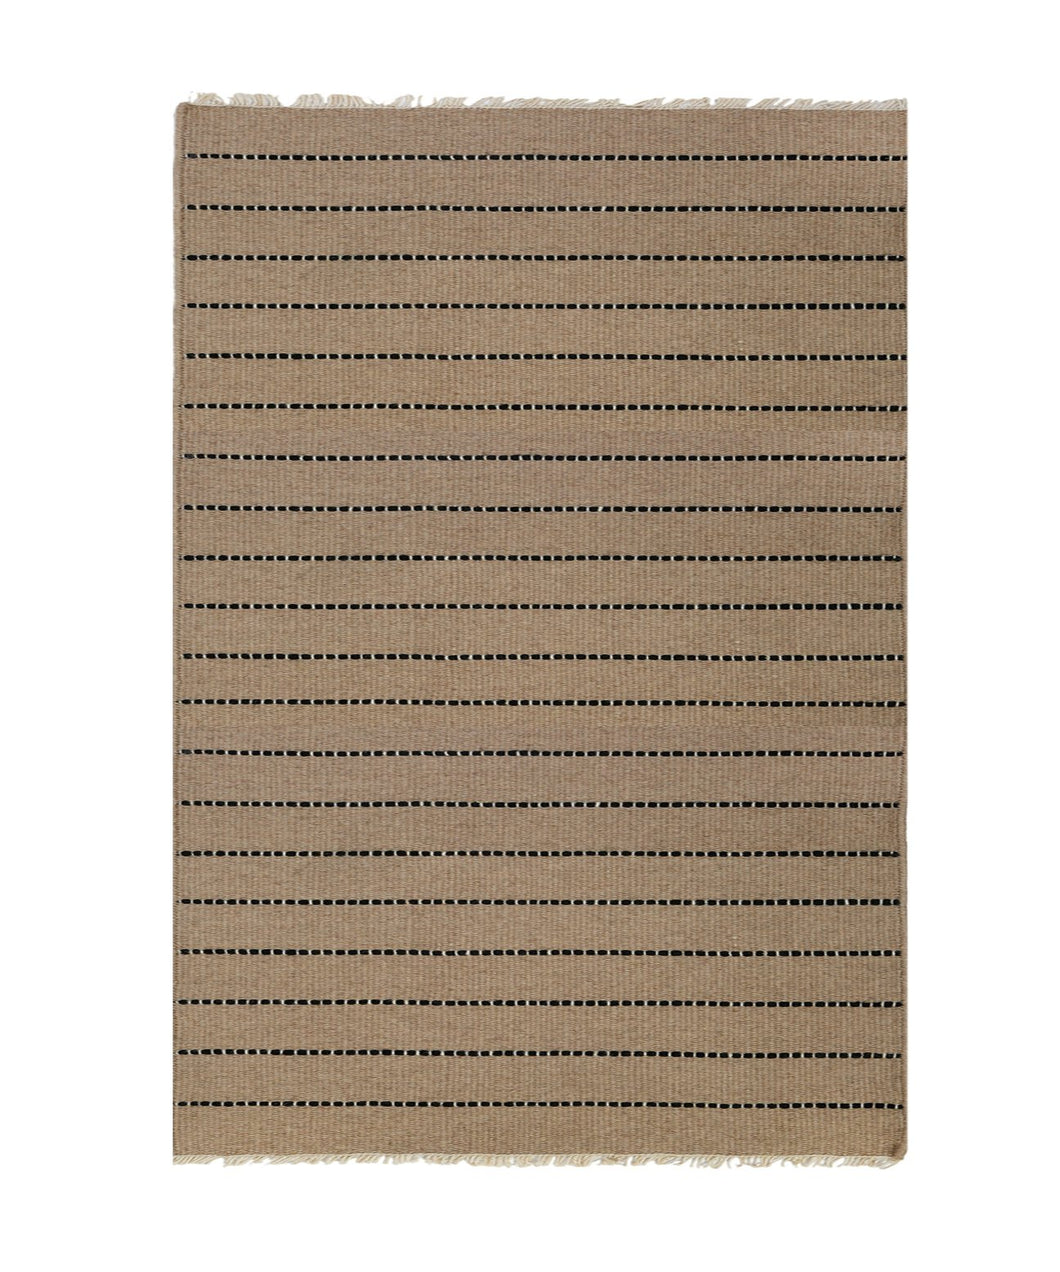 WARBY HANDWOVEN RUG - NATURAL